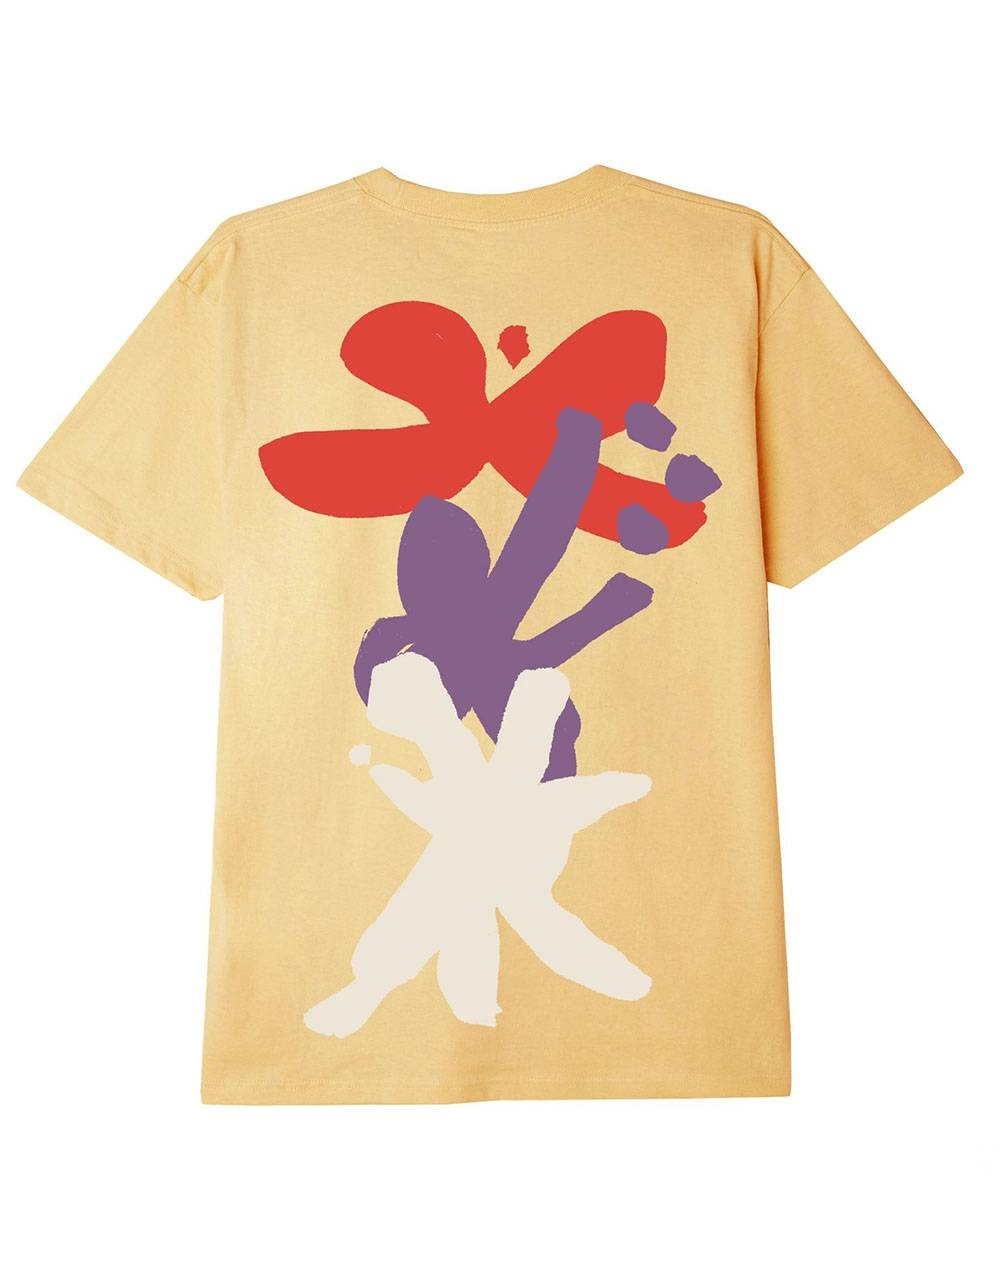 Obey Flower dance sustainable t-shirt - croissant obey T-shirt 55,00€